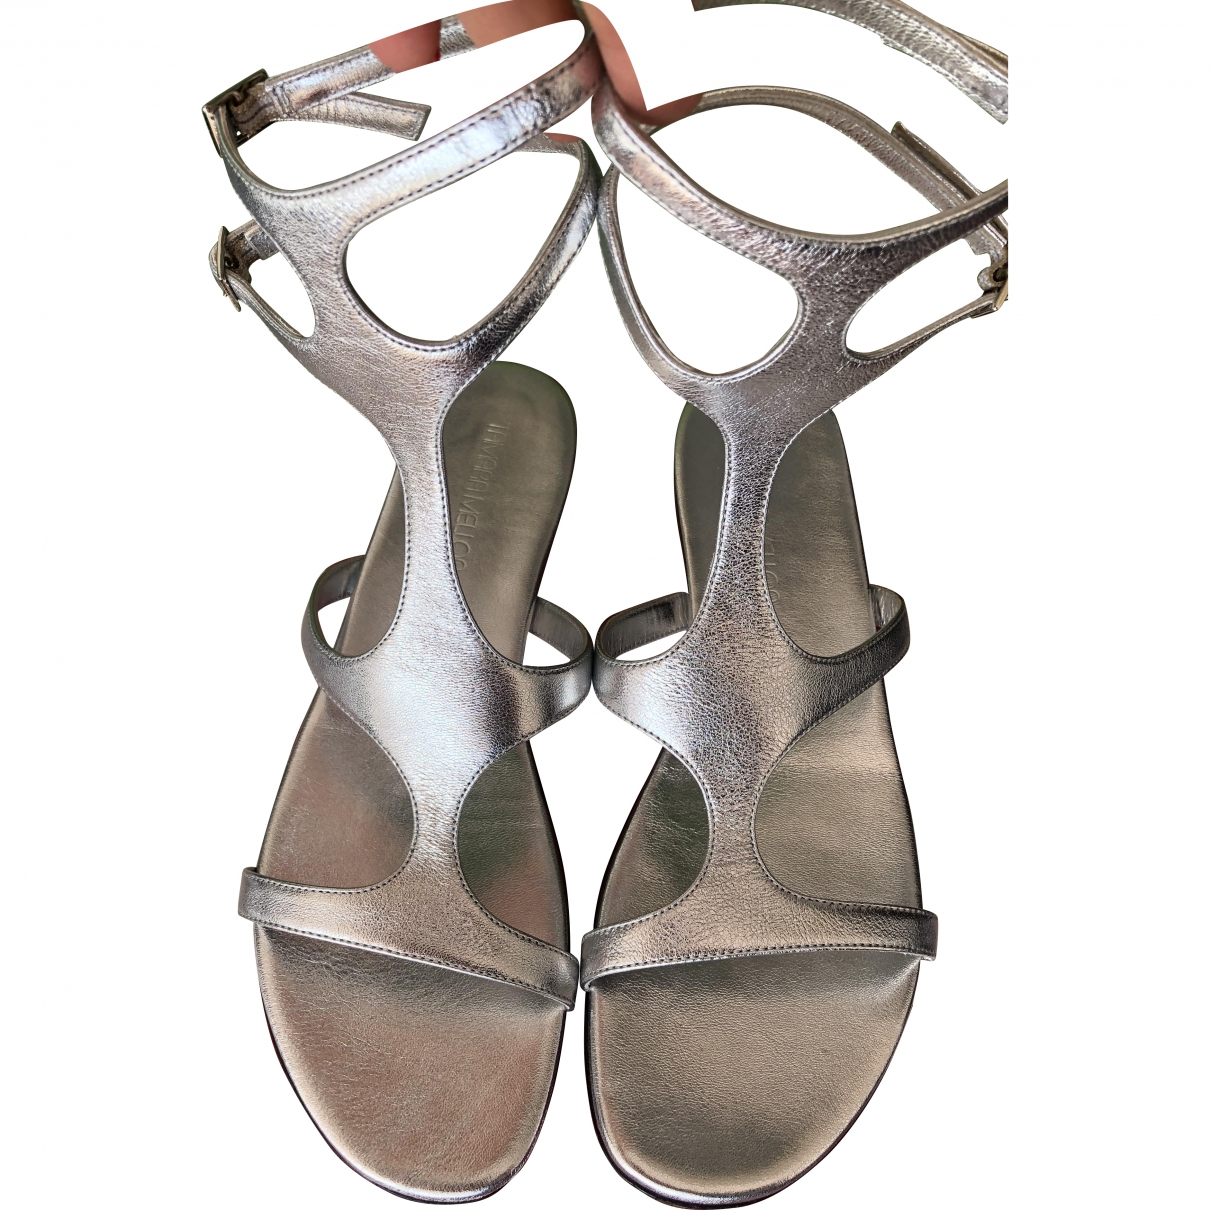 Tamara Mellon \N Silver Leather Sandals for Women 40.5 EU